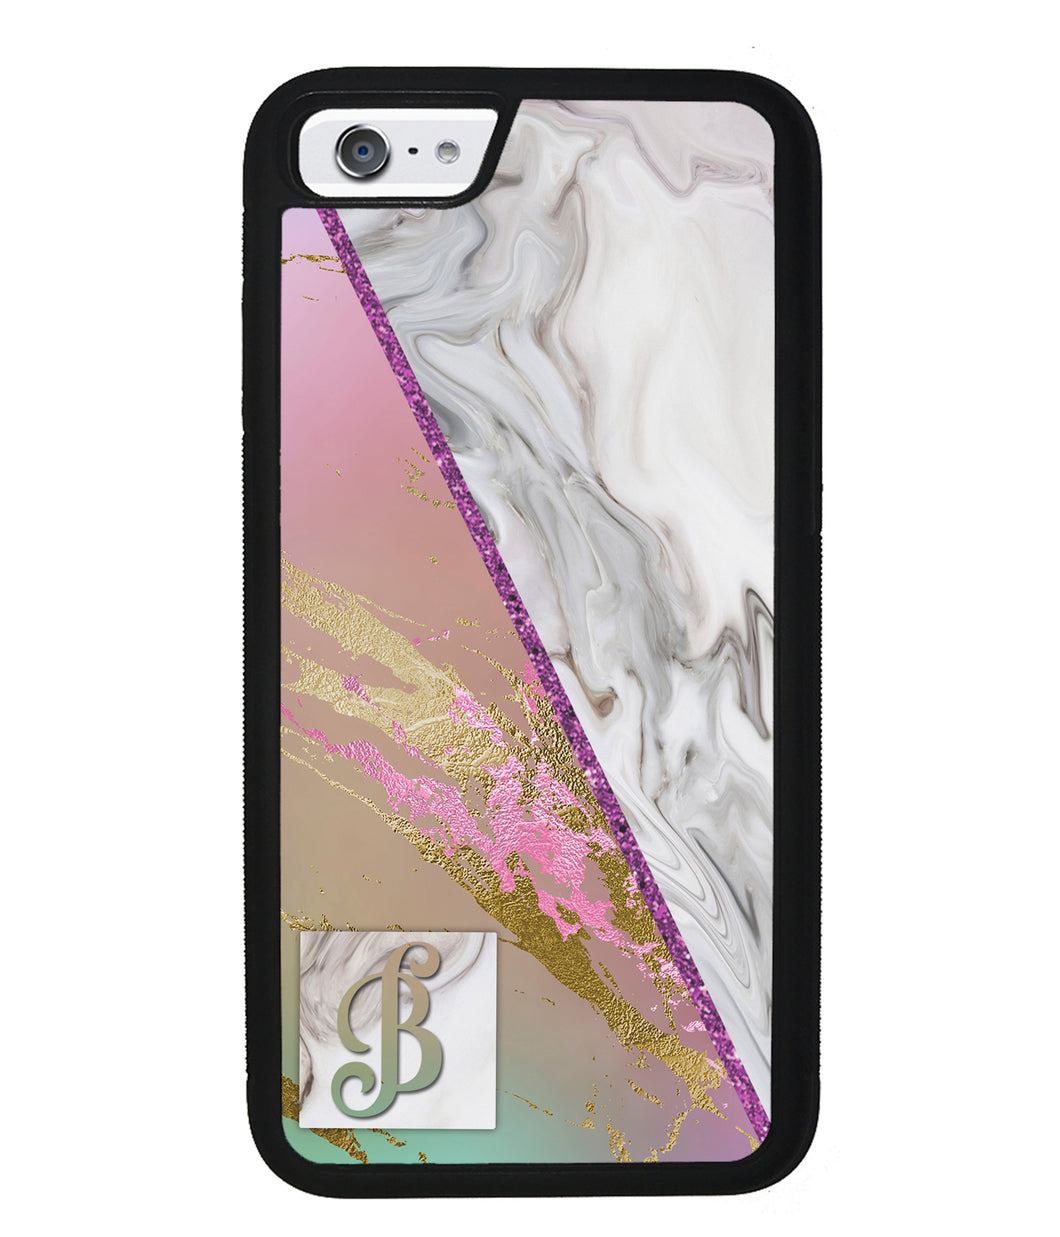 Pastel Unicorn Marble White Marble Initial | Apple iPhone Case